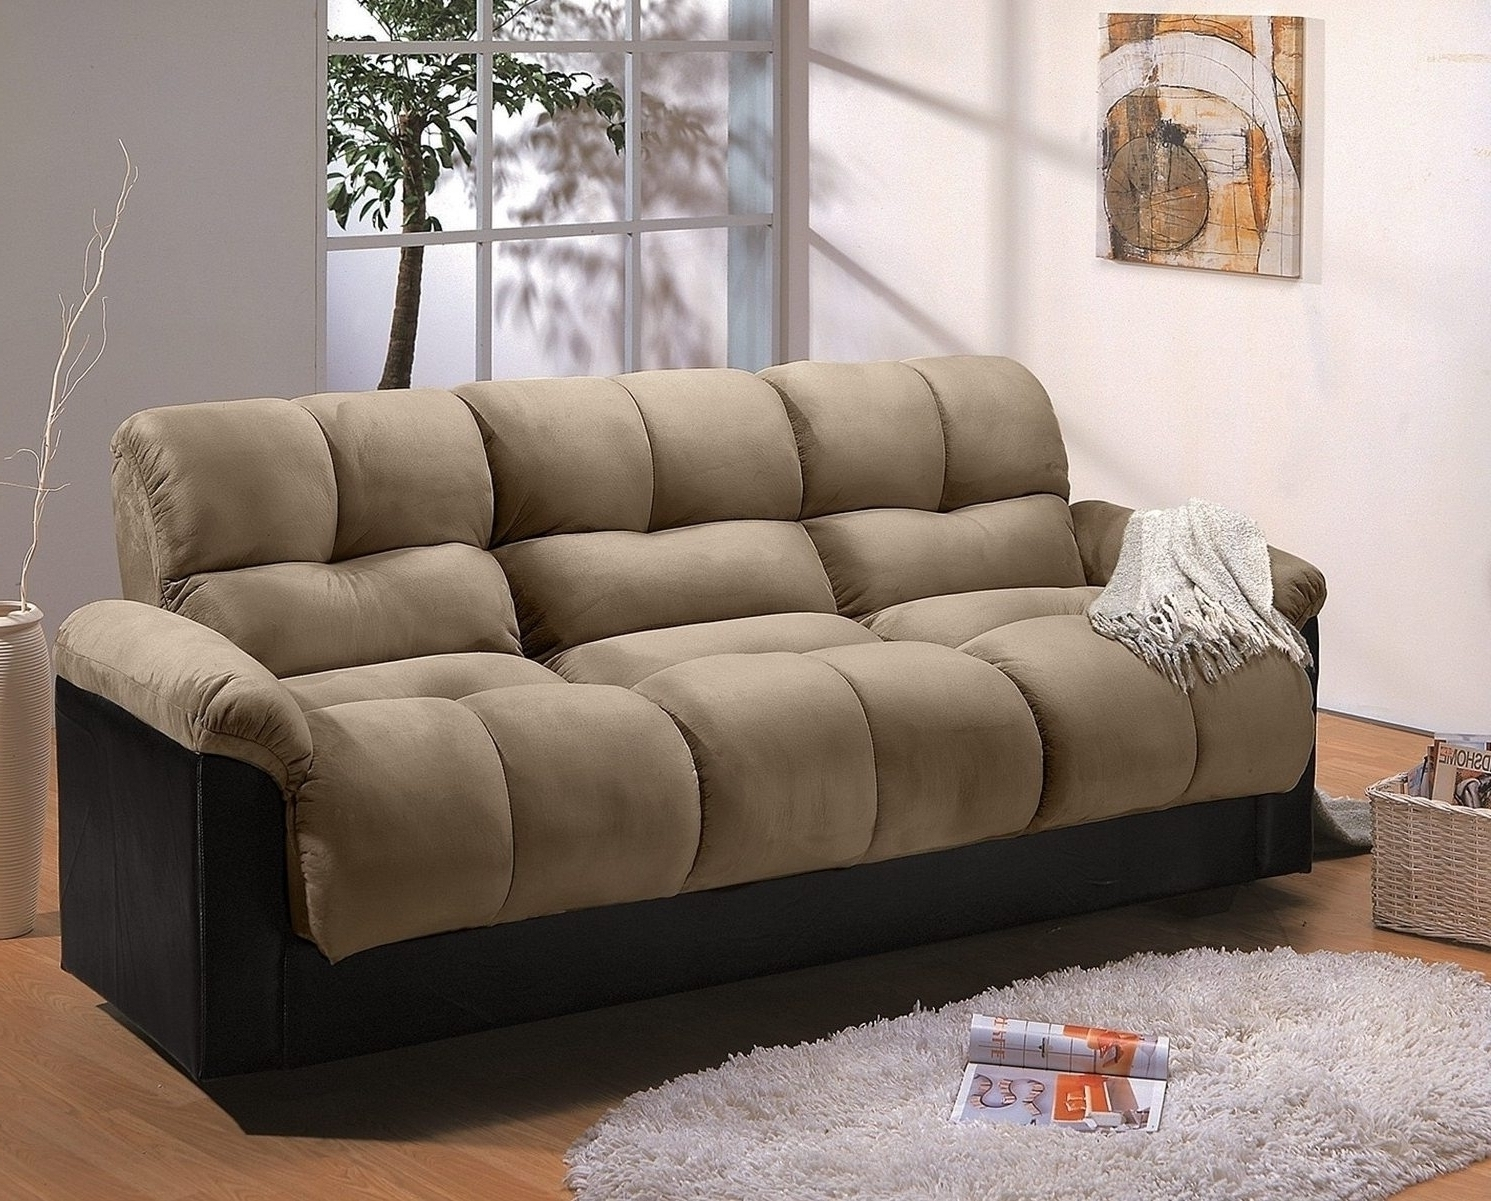 Most Recent Lazy Boy Sectional Sofa Grand Home Furnishings — The Home Redesign Inside Grand Furniture Sectional Sofas (View 8 of 15)